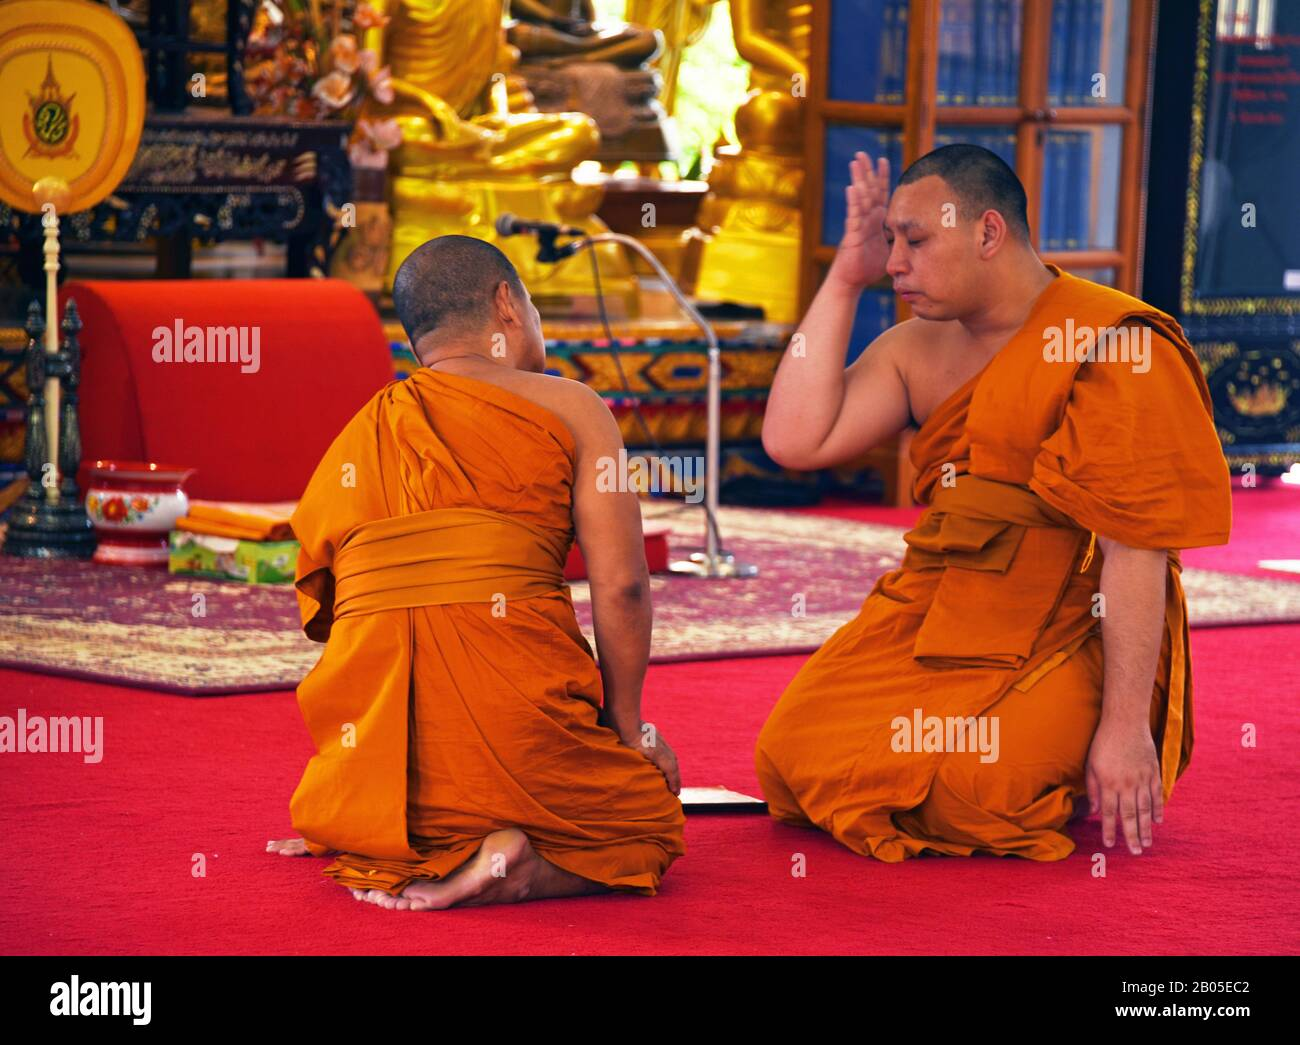 buddhistical monksin the temple of Wat Kajorn Rangsan, Thailand, Phuket Stock Photo